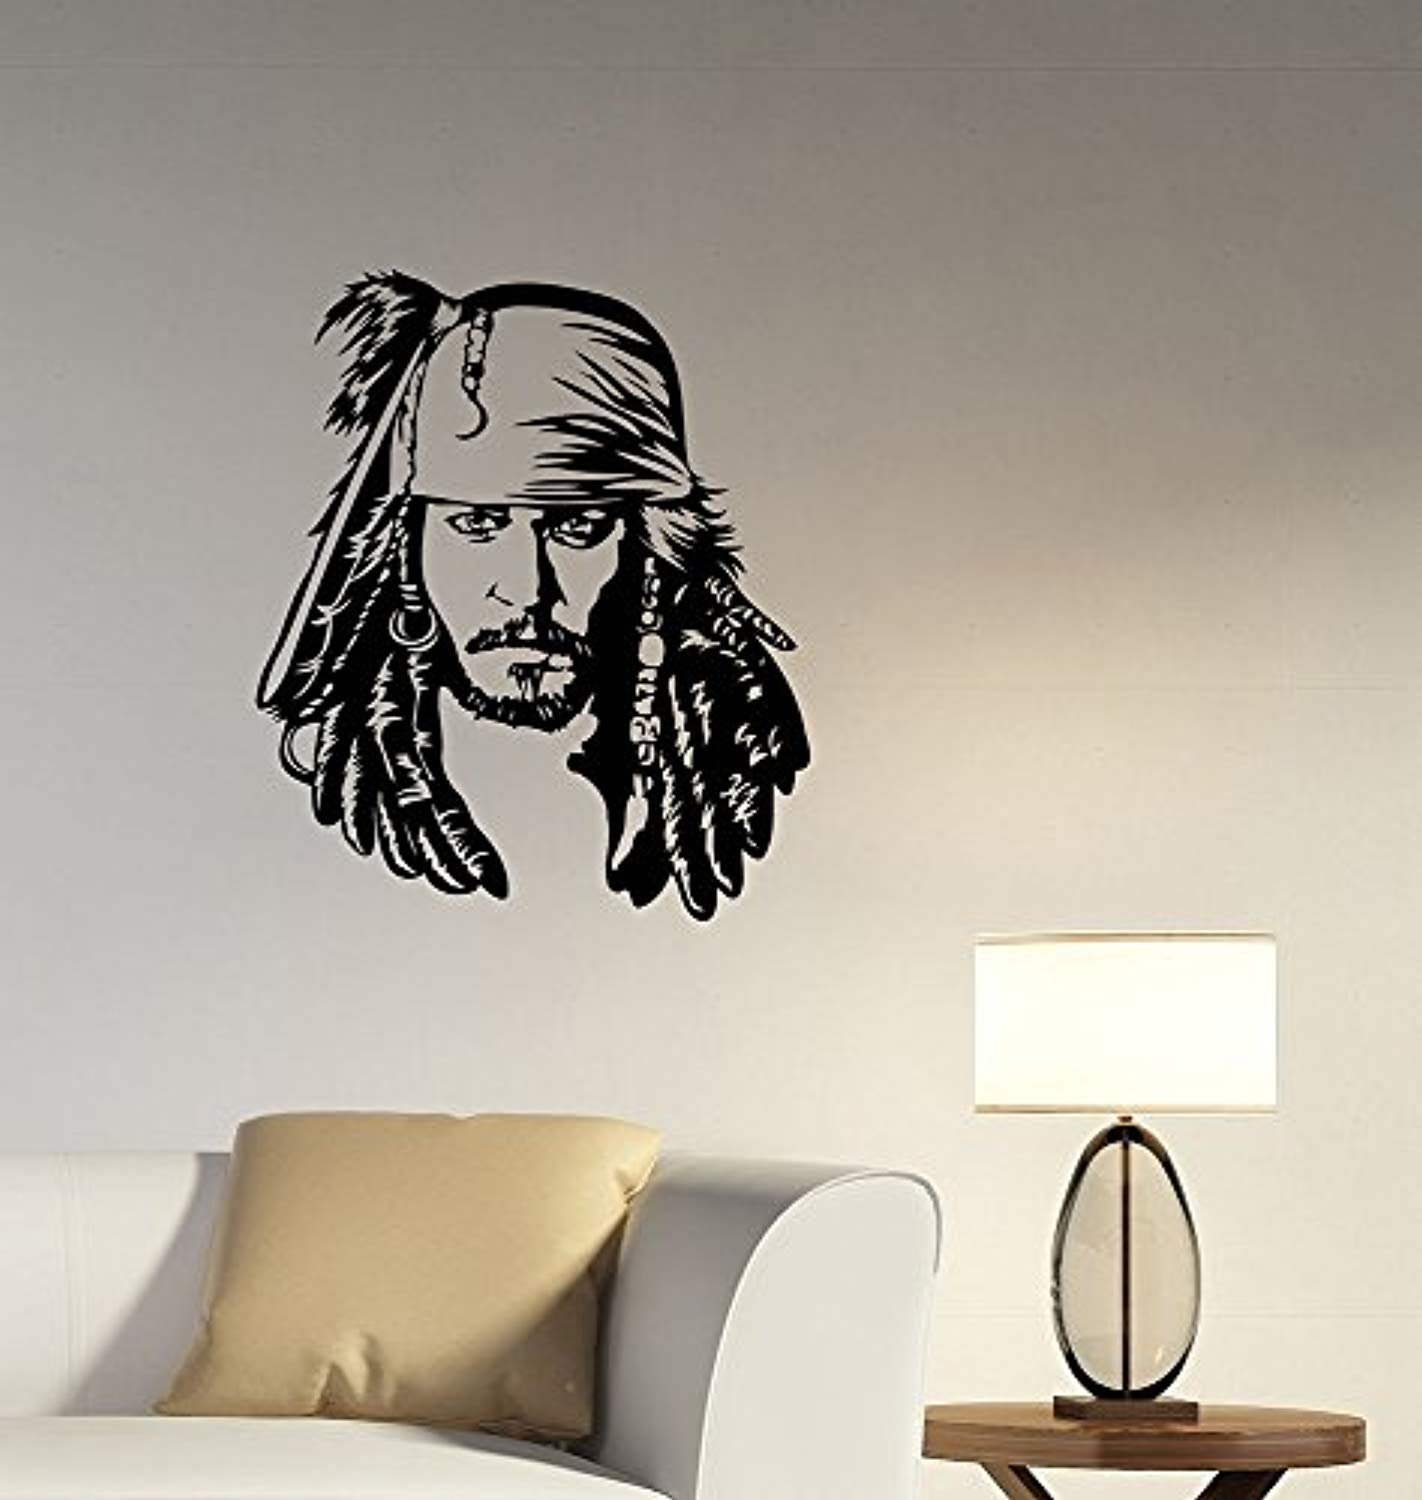 A Good Decals USA Captain Jack Sparrow Face Wall Decal Removable Vinyl Sticker Pirates of the Carribean Art Decorations for Home Room Bedroom Movie Decor cjs1